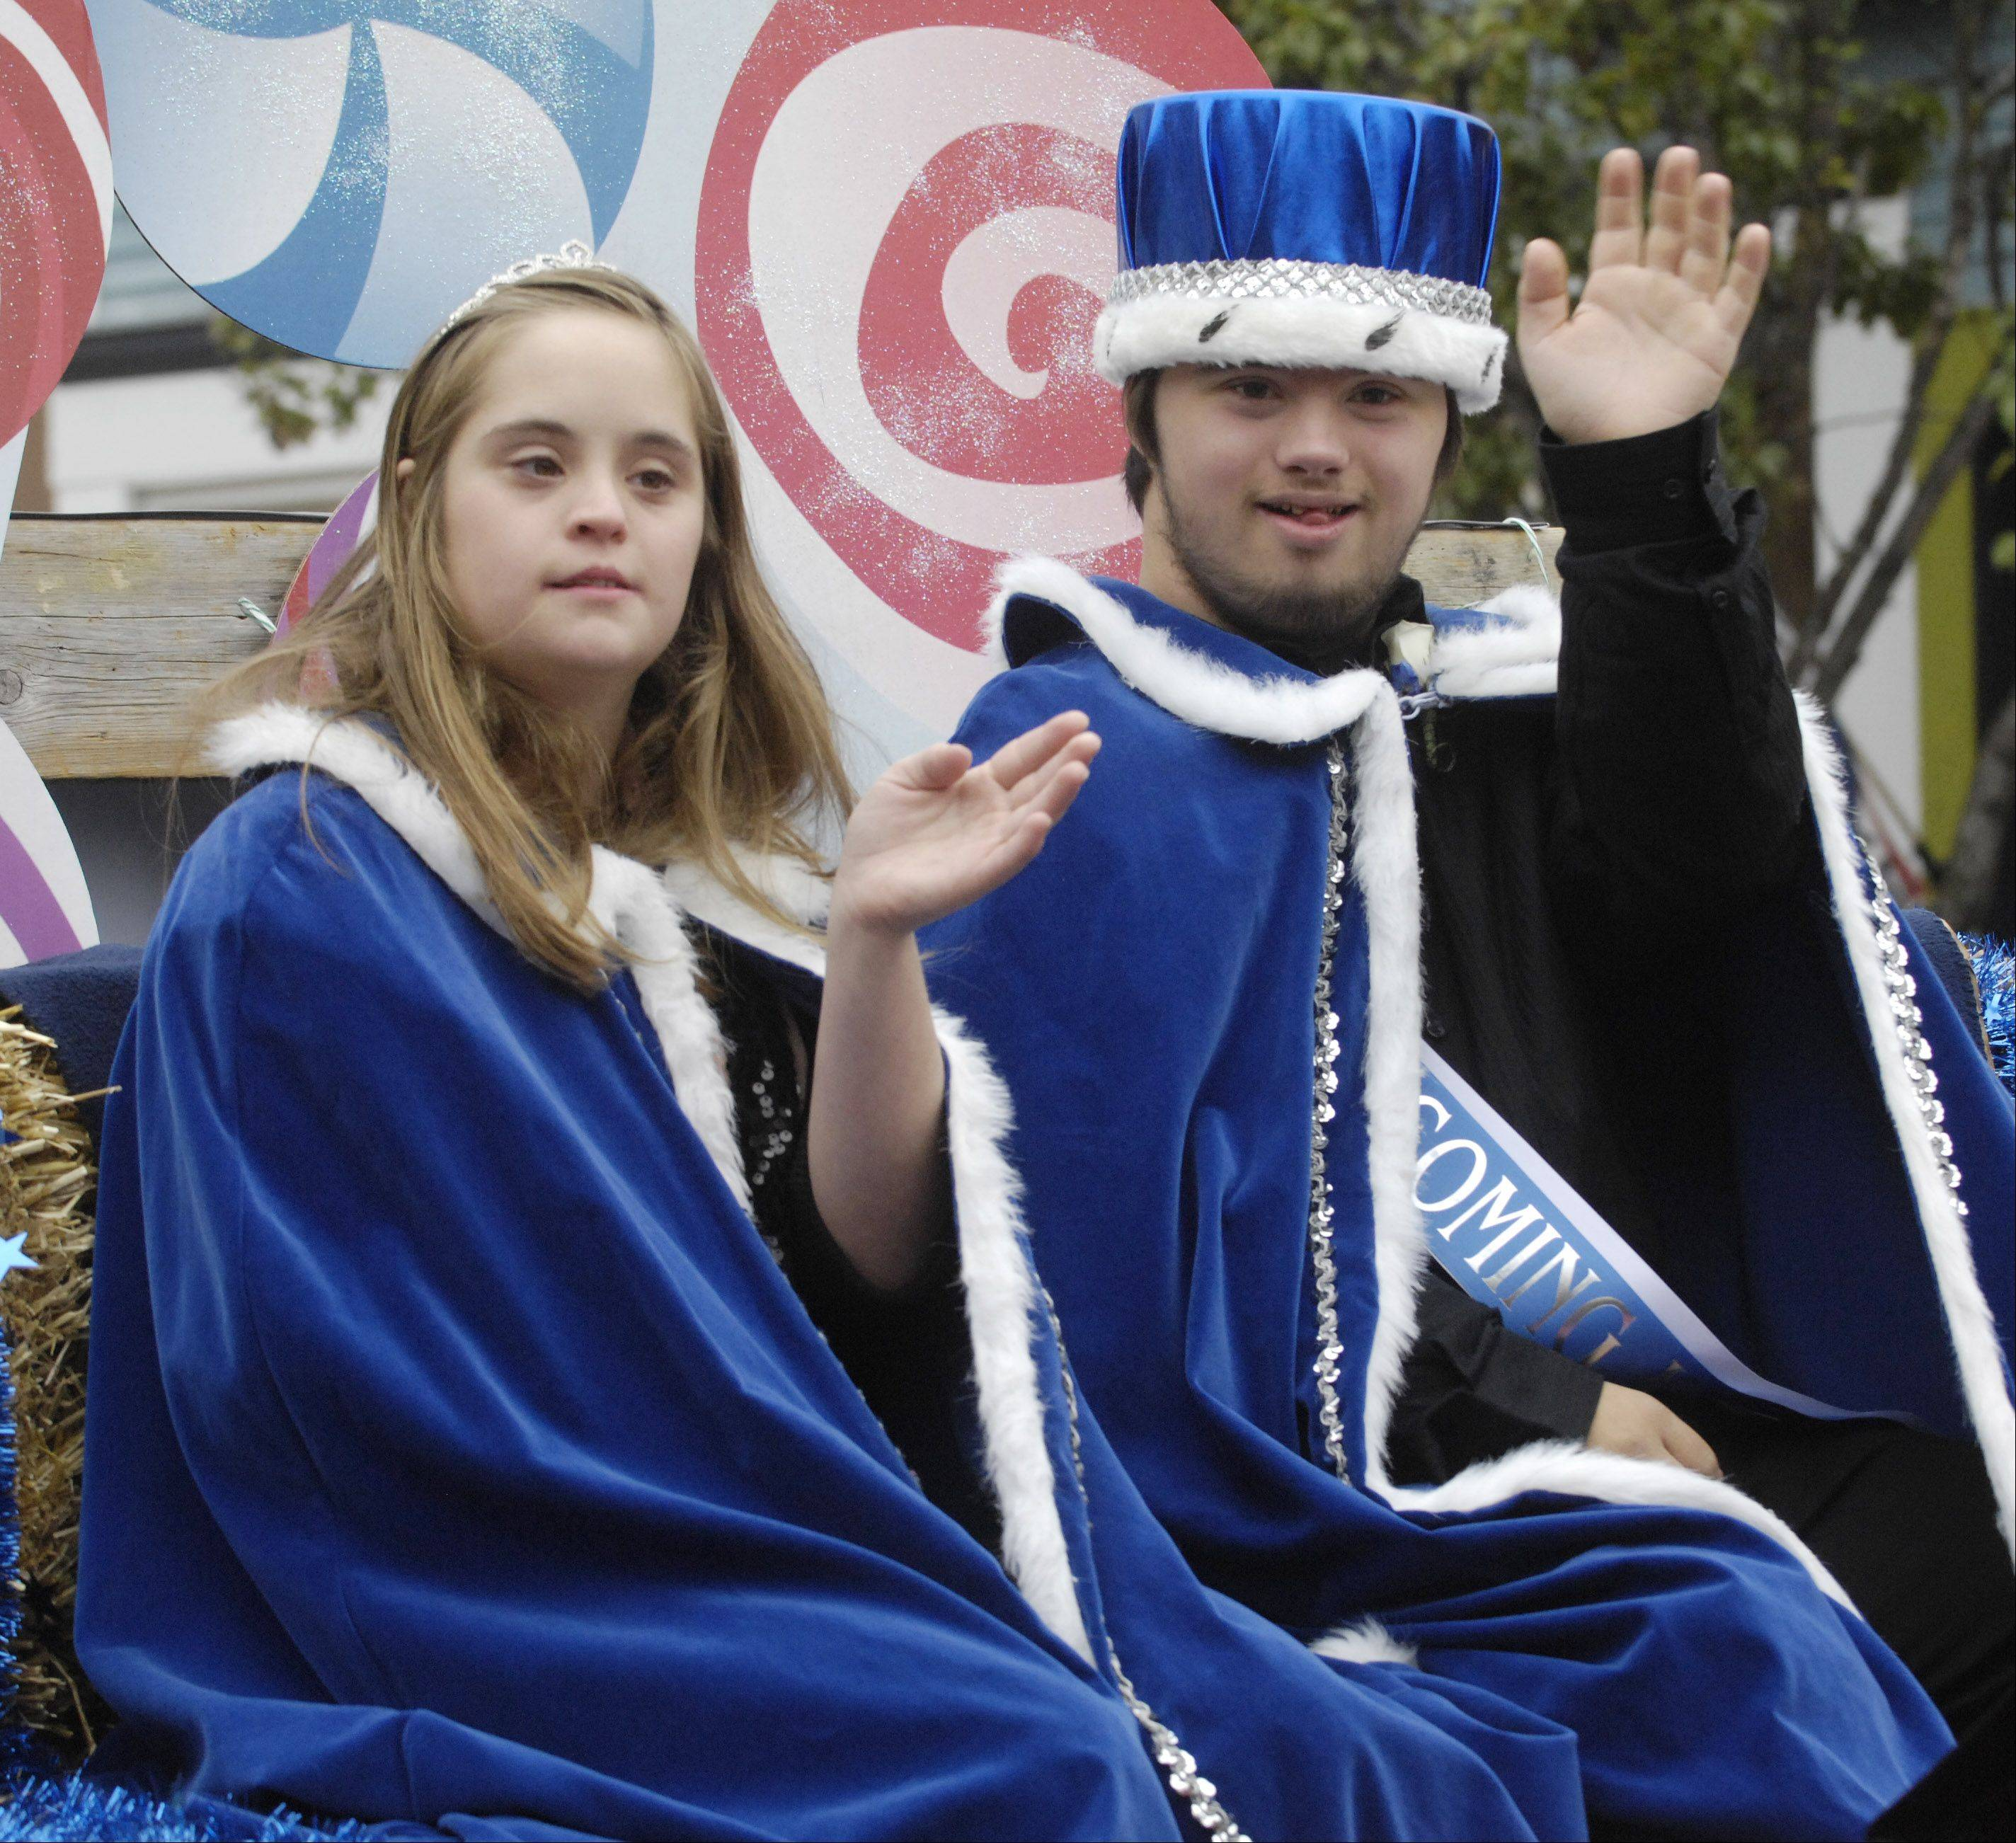 Homecoming queen Krissy Altersohn and king Thomas Broviak ride on a float during Geneva High School's homecoming parade.